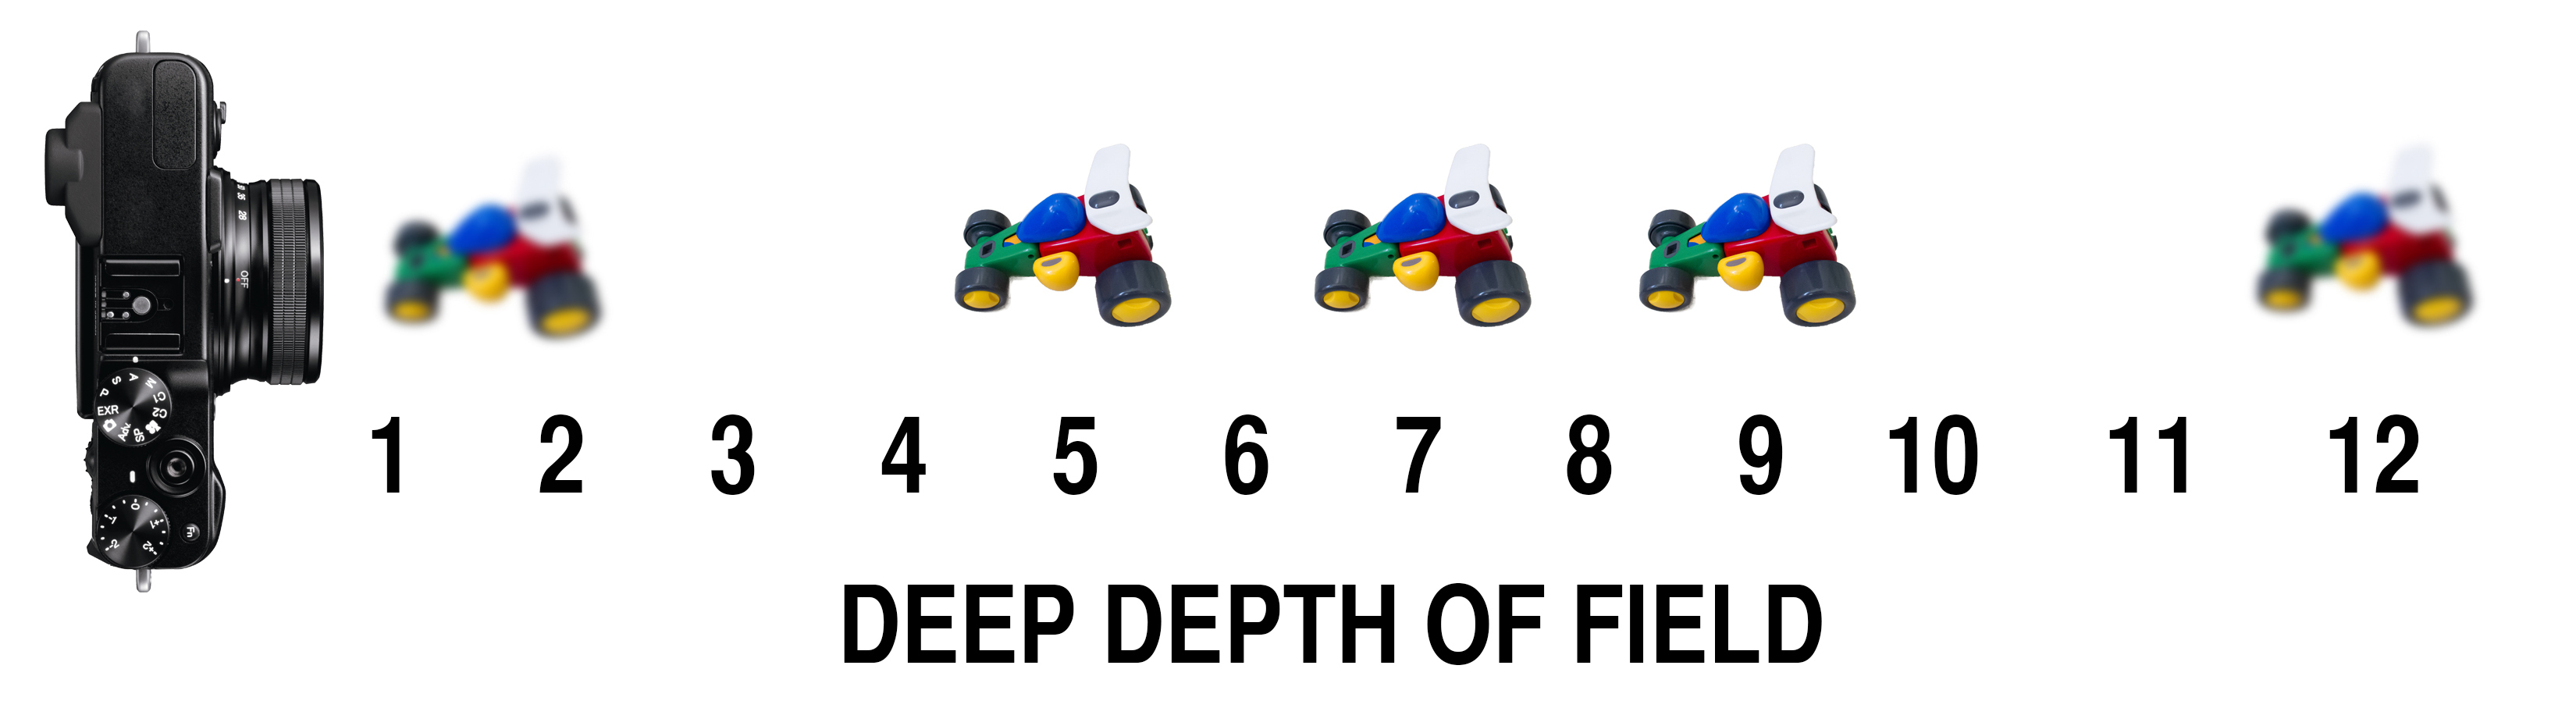 Depth Of Field clipart #1, Download drawings